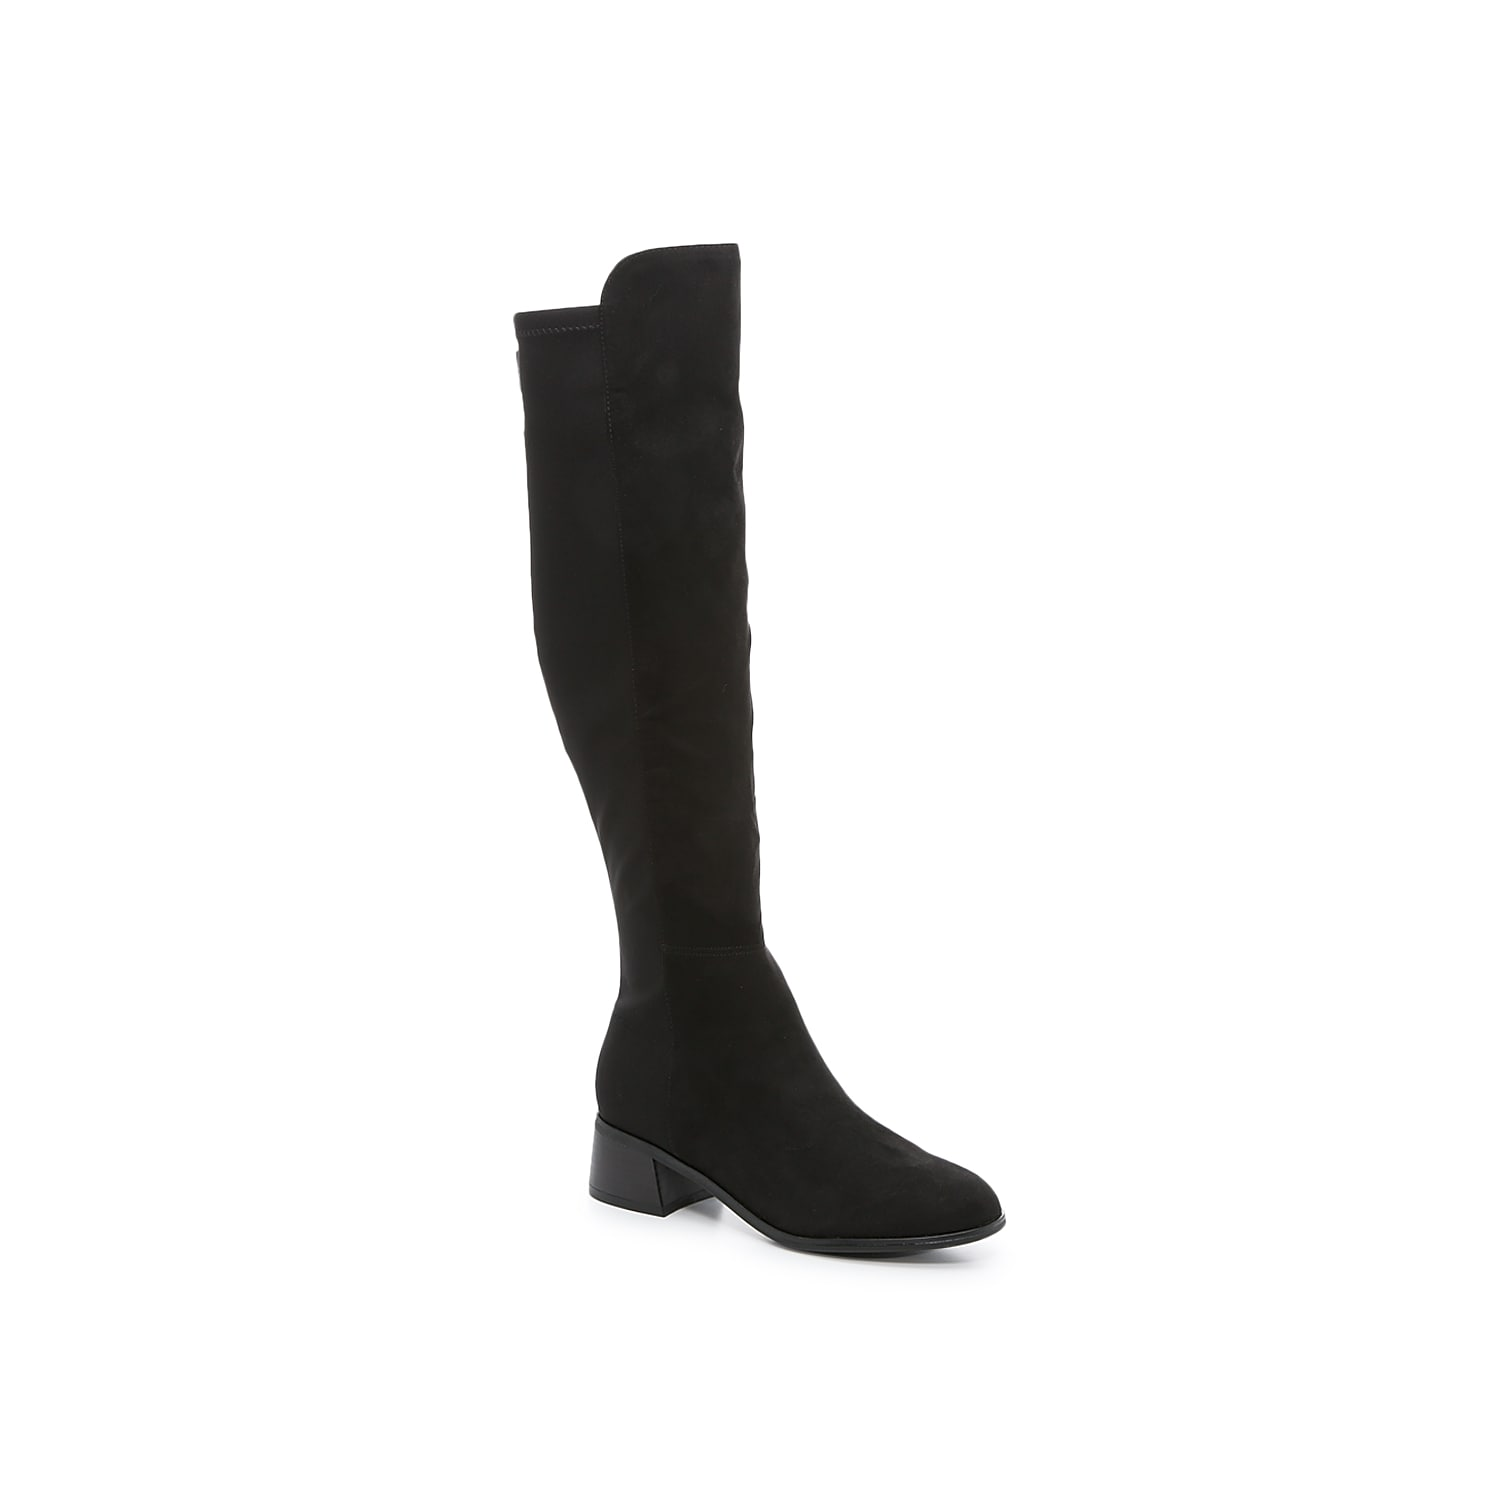 Step into the Hayla knee-high boot from Unisa for an instant style transformation that\\\'s ready to wear with leggings or dresses. The mixed material upper features a stretchy elastic panel that provides a just-right fit. Click here for Boot Measuring Guide.